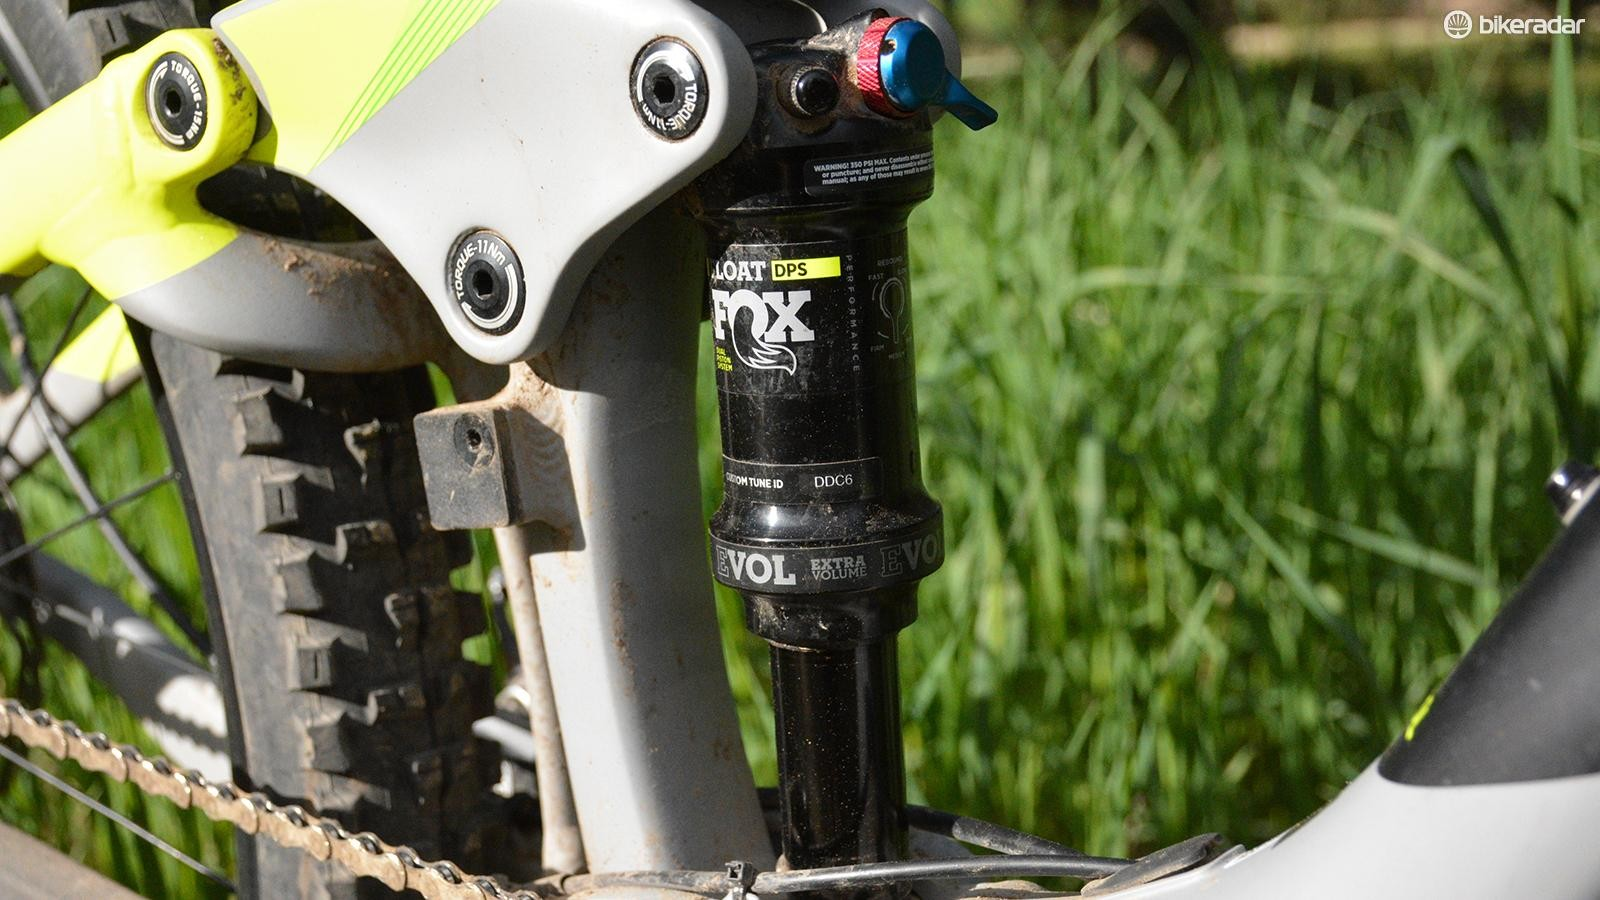 In the back, a Fox Float DPS Evol rear shock was a good match to the front